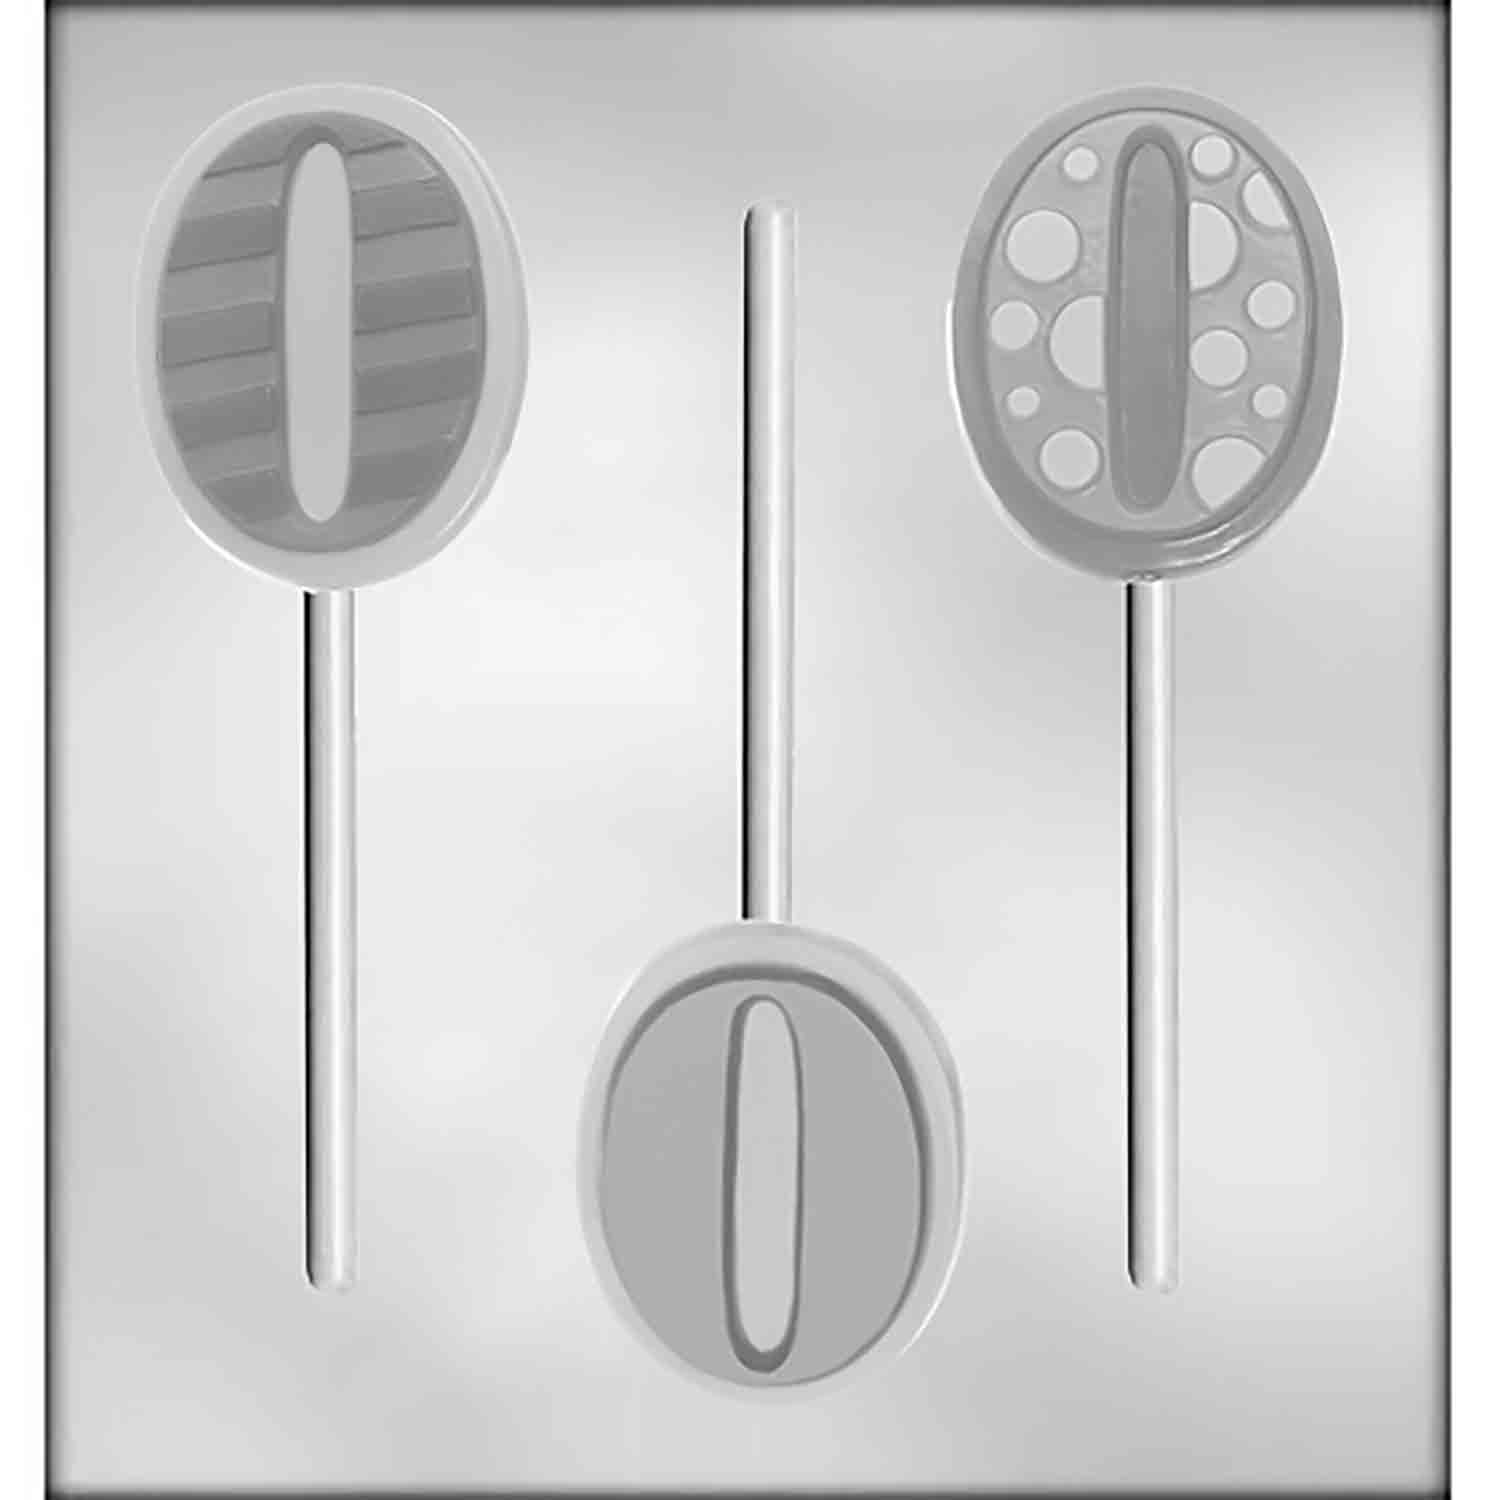 Number 0 Sucker Chocolate Candy Mold